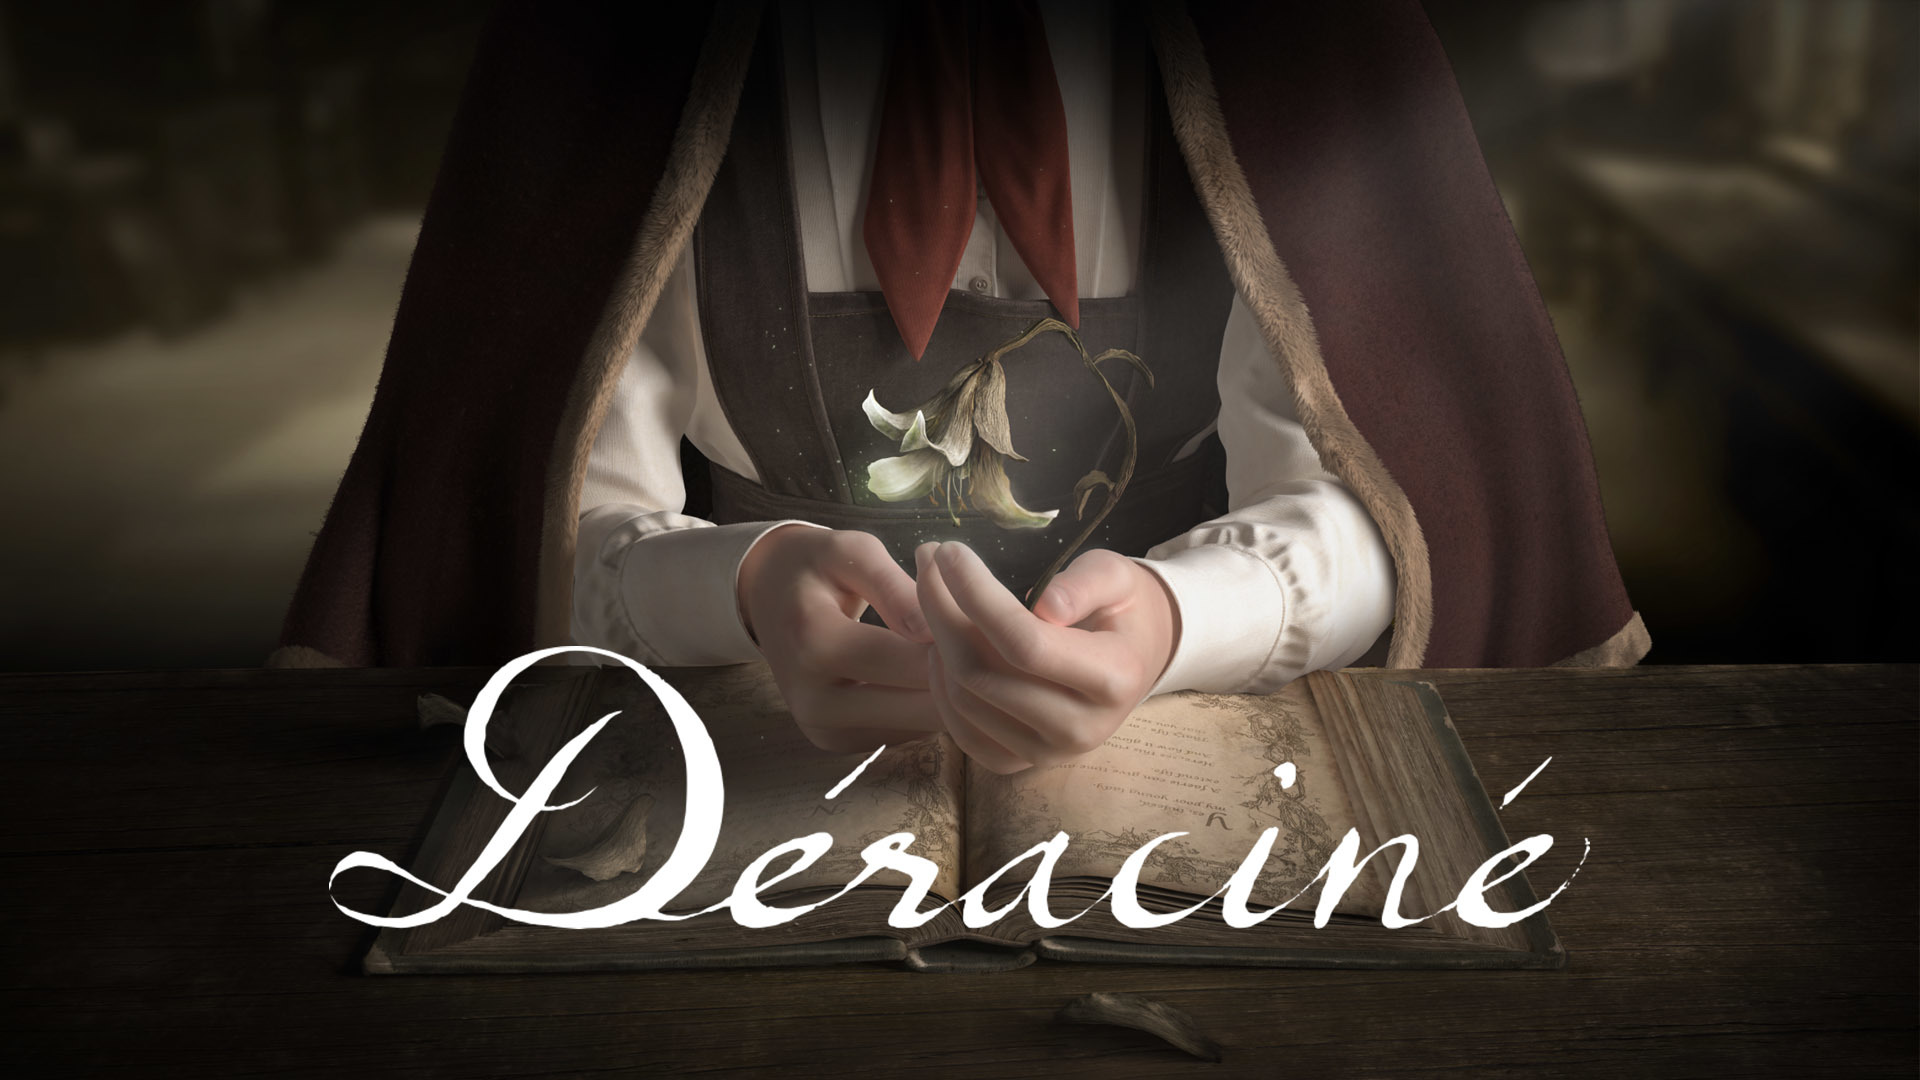 『Déraciné(デラシネ)』キーアート (c)Sony Interactive Entertainment Inc. Developed by FromSoftware, Inc.